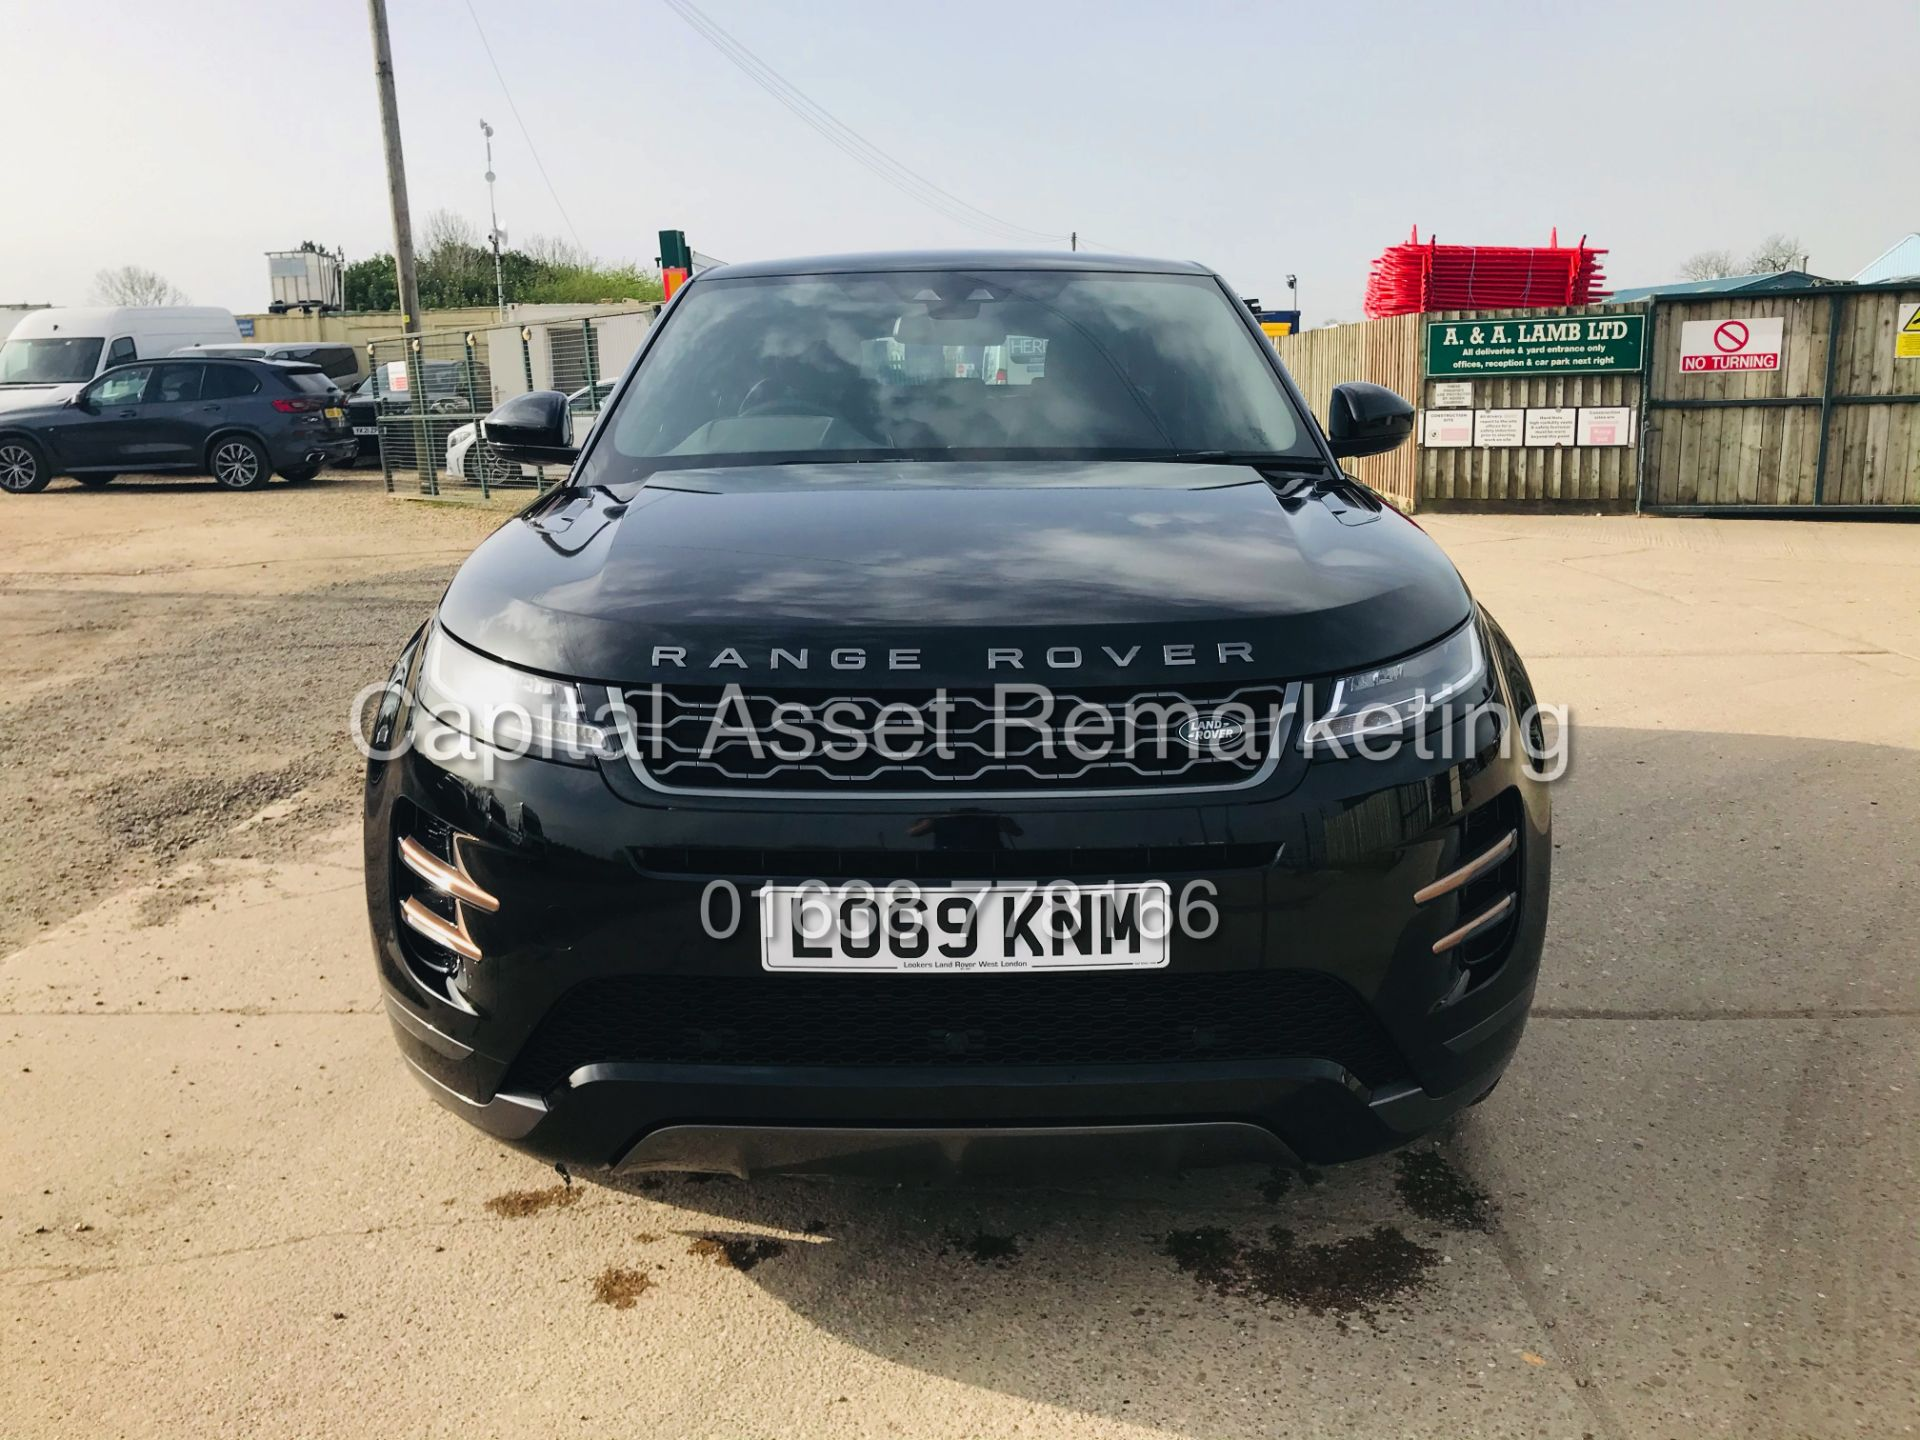 "(On Sale) RANGE ROVER EVOQUE R-DYNAMIC 2.0 D150 ""BLACK EDITION"" (2020) GREAT SPEC - ONLY 4500 MILES - Image 4 of 26"